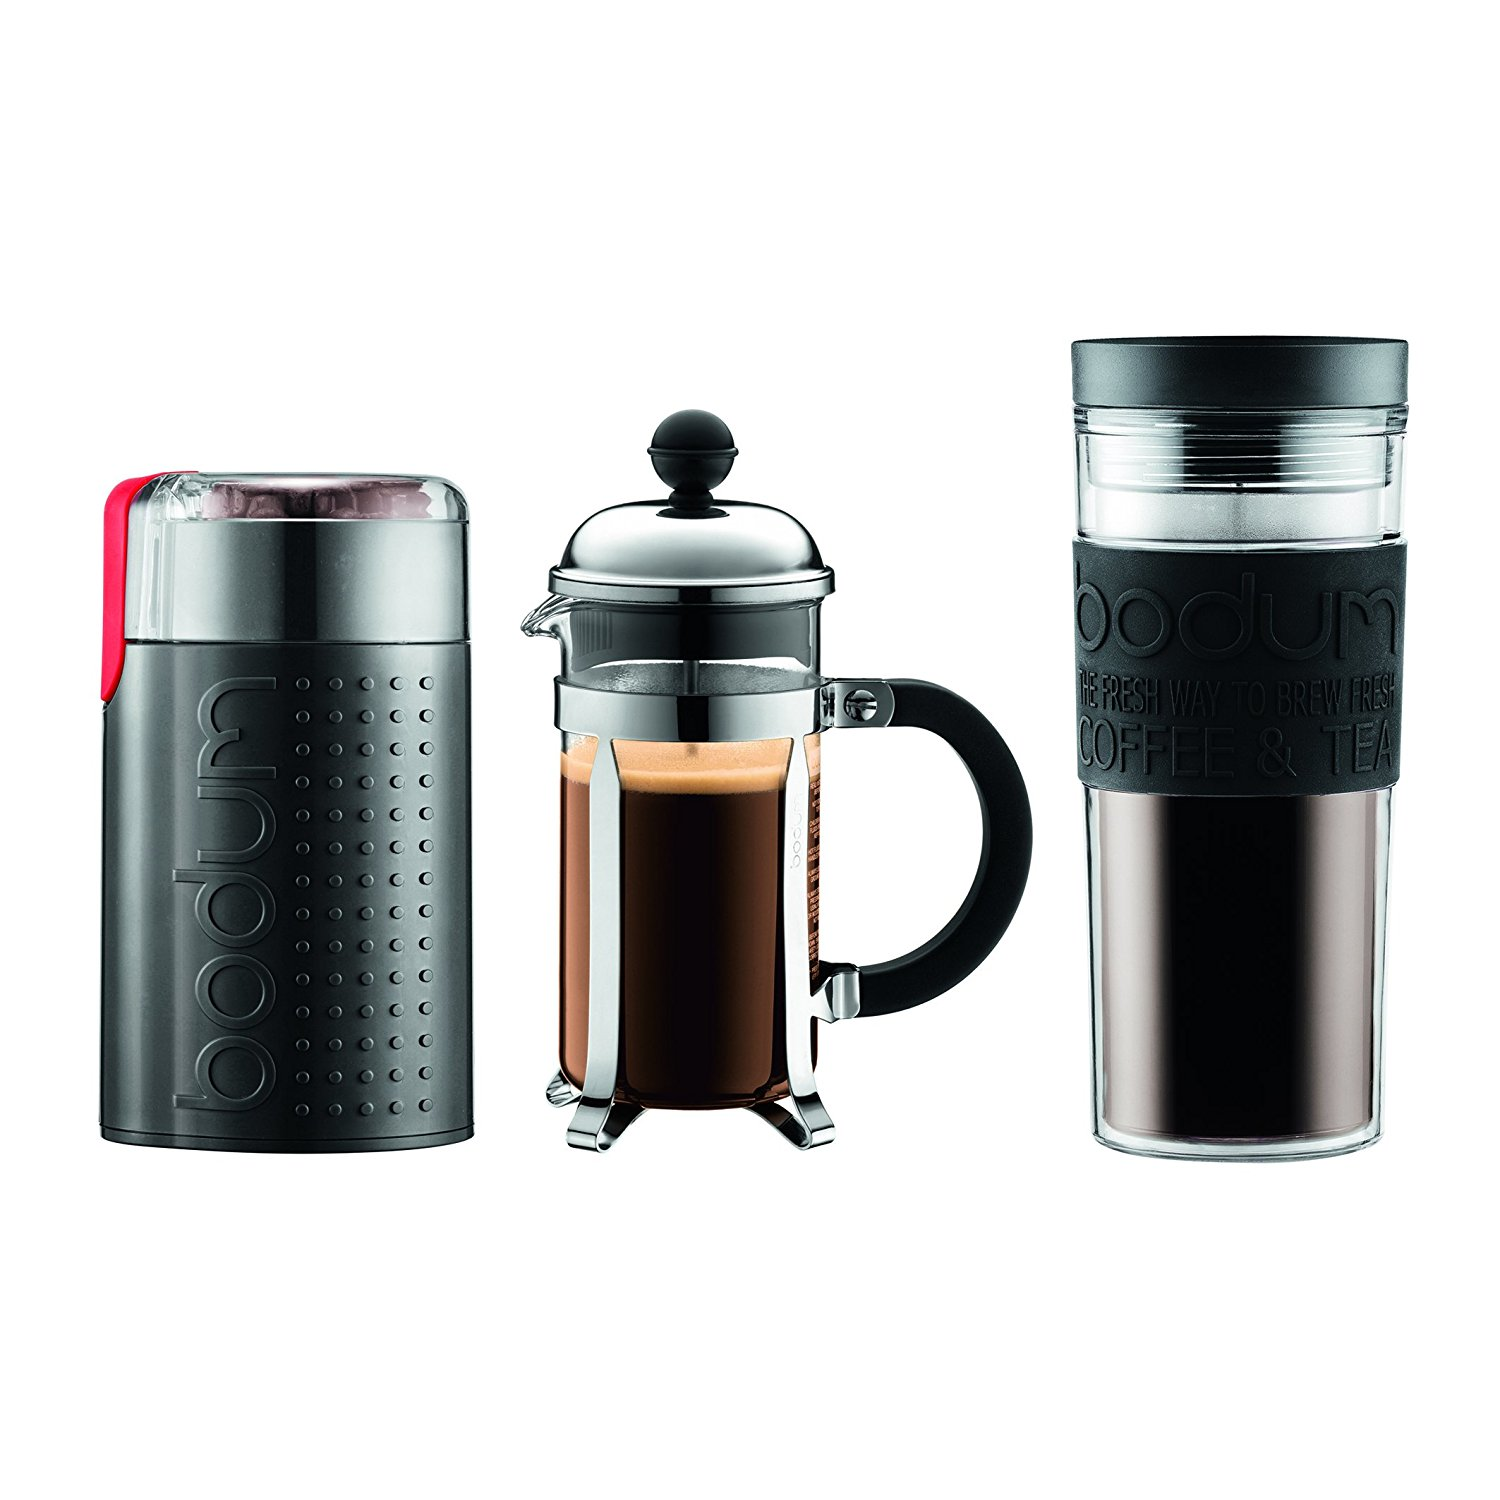 Plastic Free Coffee Maker Electric : Bodum 3-Pc. Grind, Boil, Brew Value Set For Just USD 39.93 at Macy s Hot Deals - DealsMaven.com